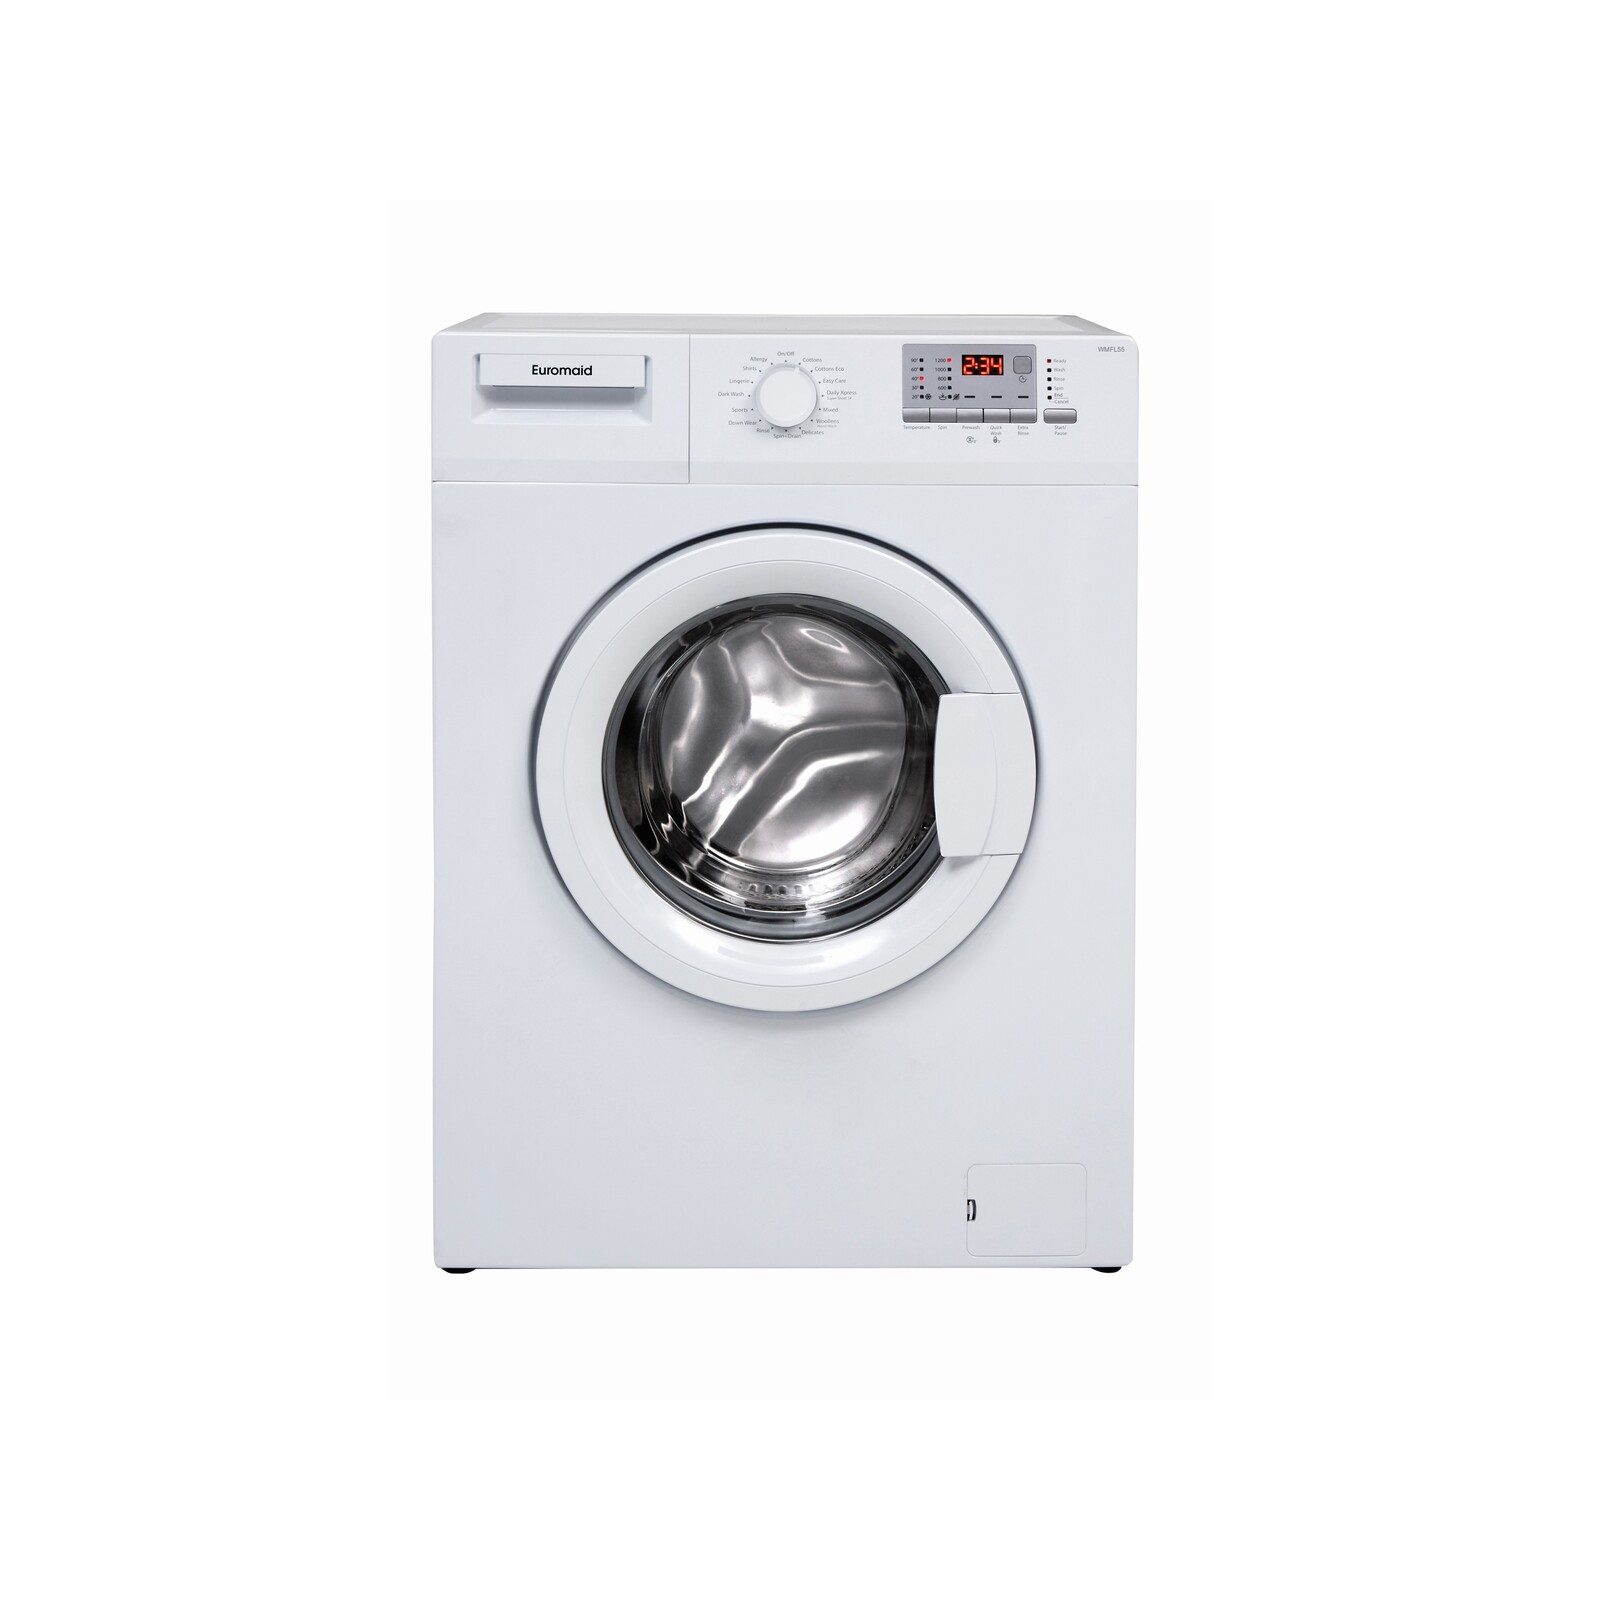 Euromaid - 5.5kg Front Load Washer  WMFL55